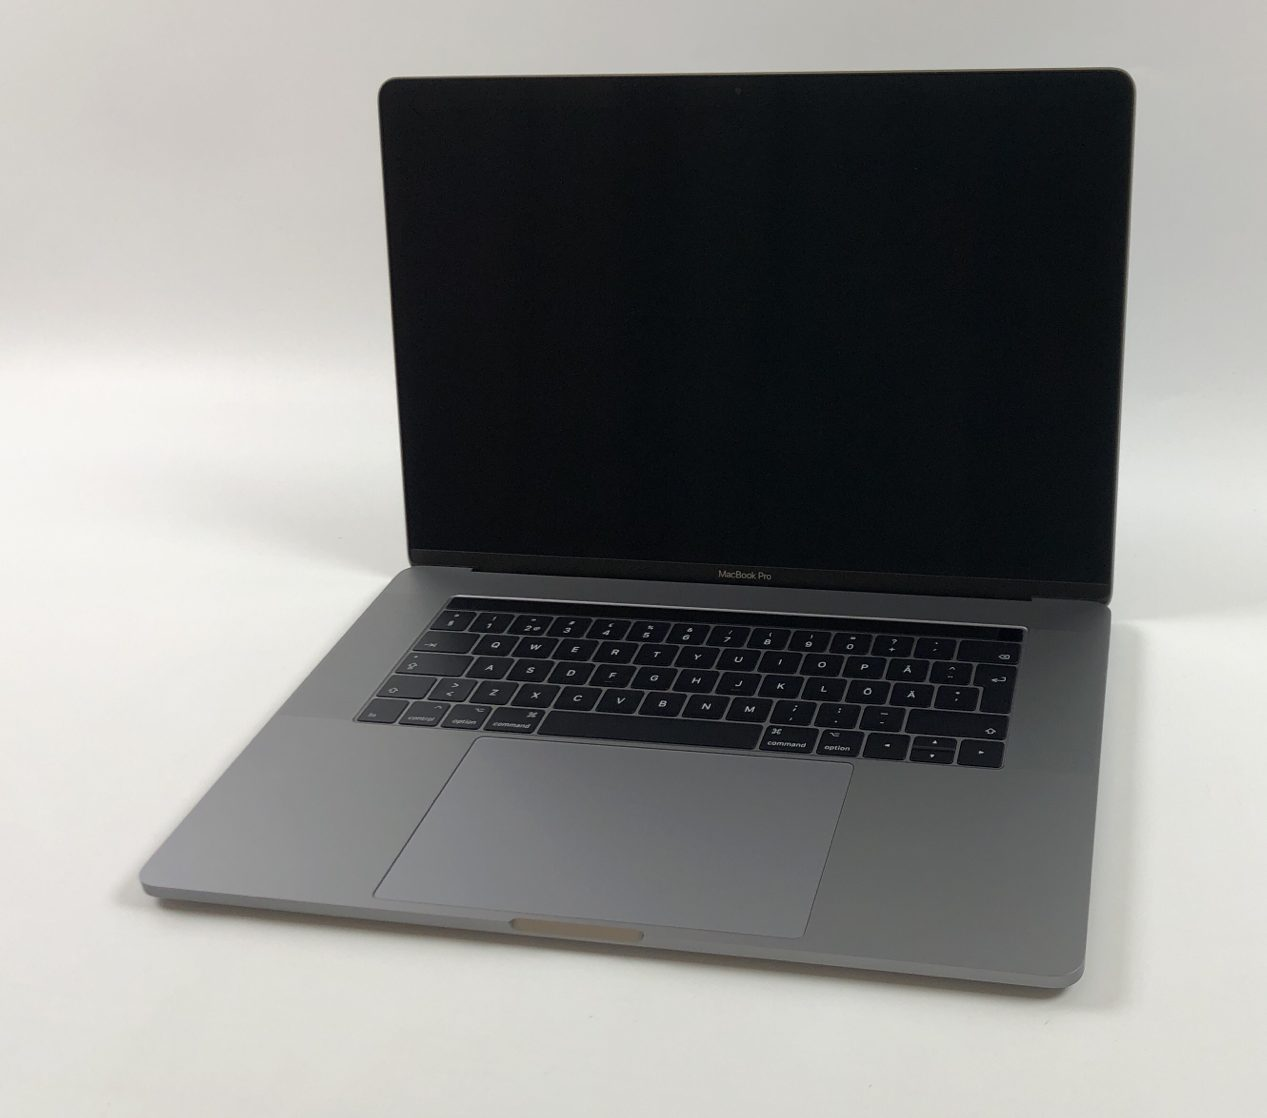 "MacBook Pro 15"" Touch Bar Late 2016 (Intel Quad-Core i7 2.6 GHz 16 GB RAM 256 GB SSD), Space Gray, Intel Quad-Core i7 2.6 GHz, 16 GB RAM, 256 GB SSD, image 1"